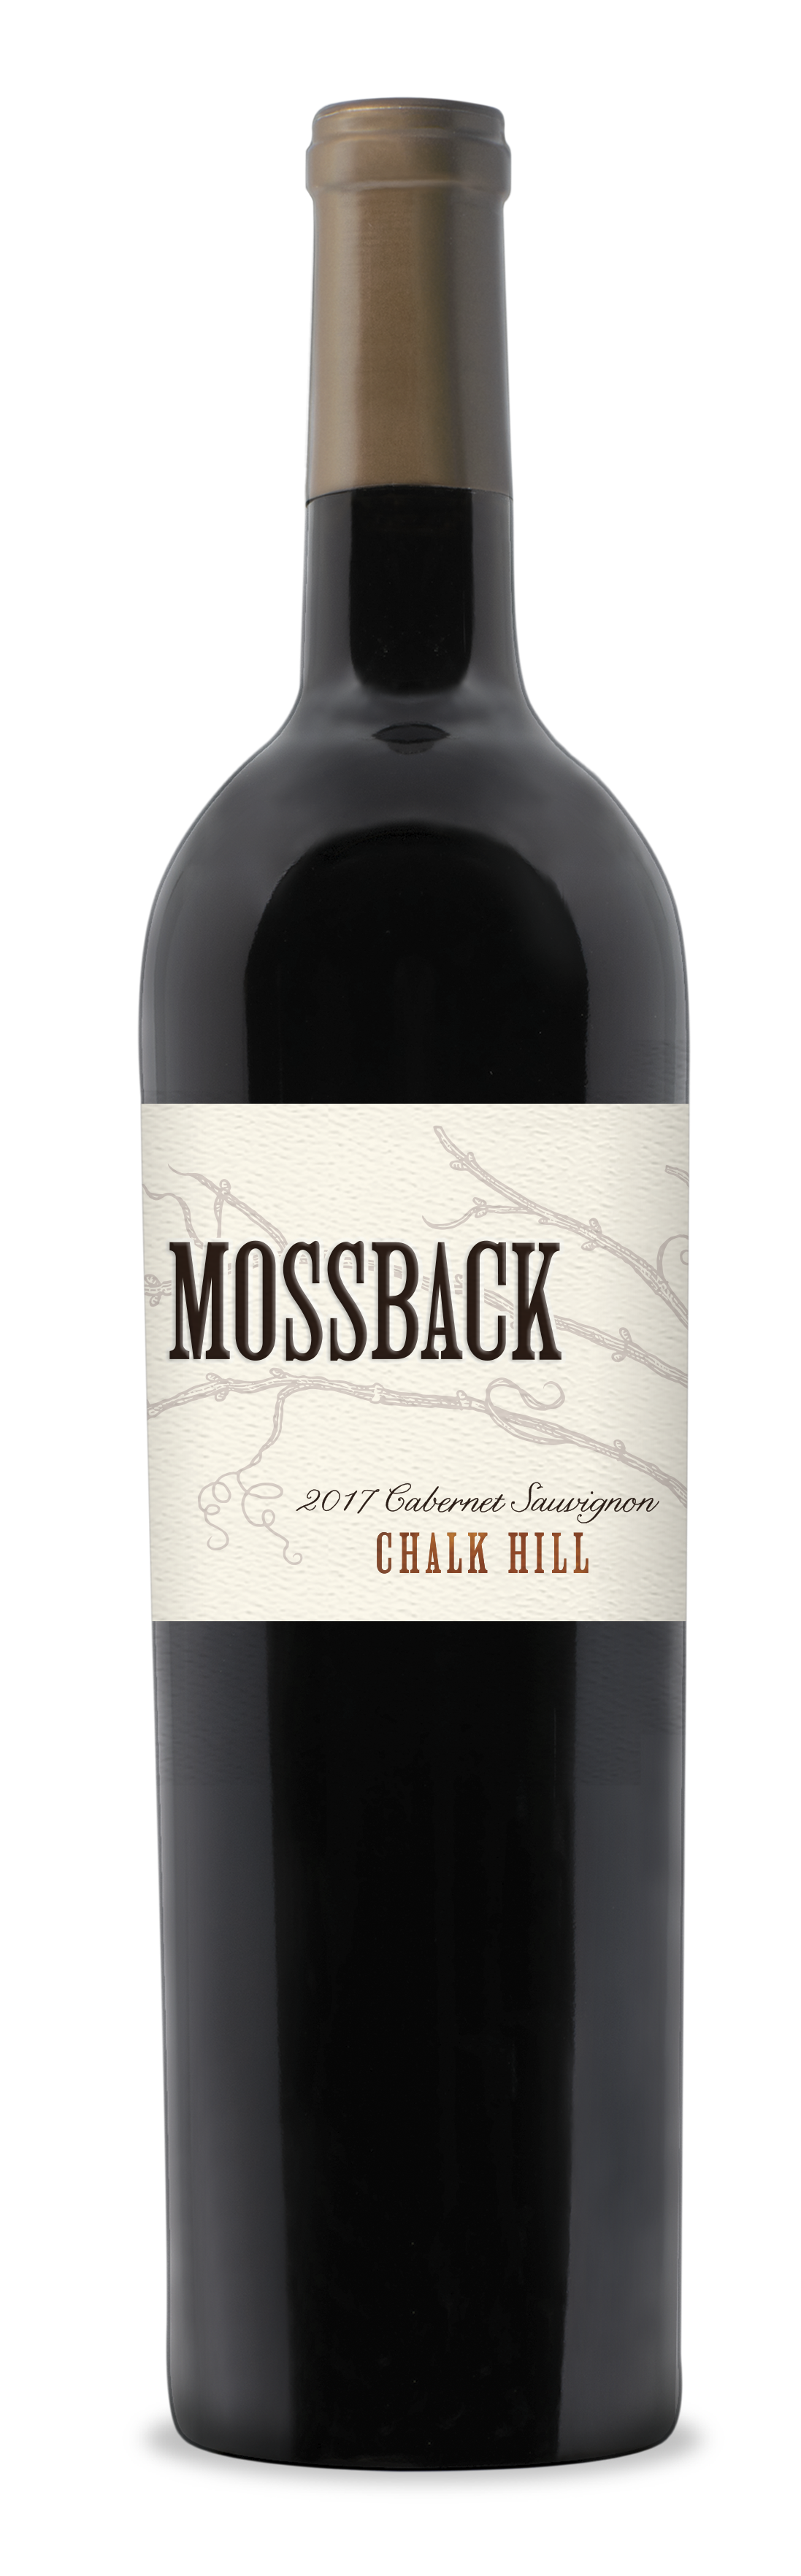 Product Image for 2017 Mossback Chalk Hill Cabernet Sauvignon